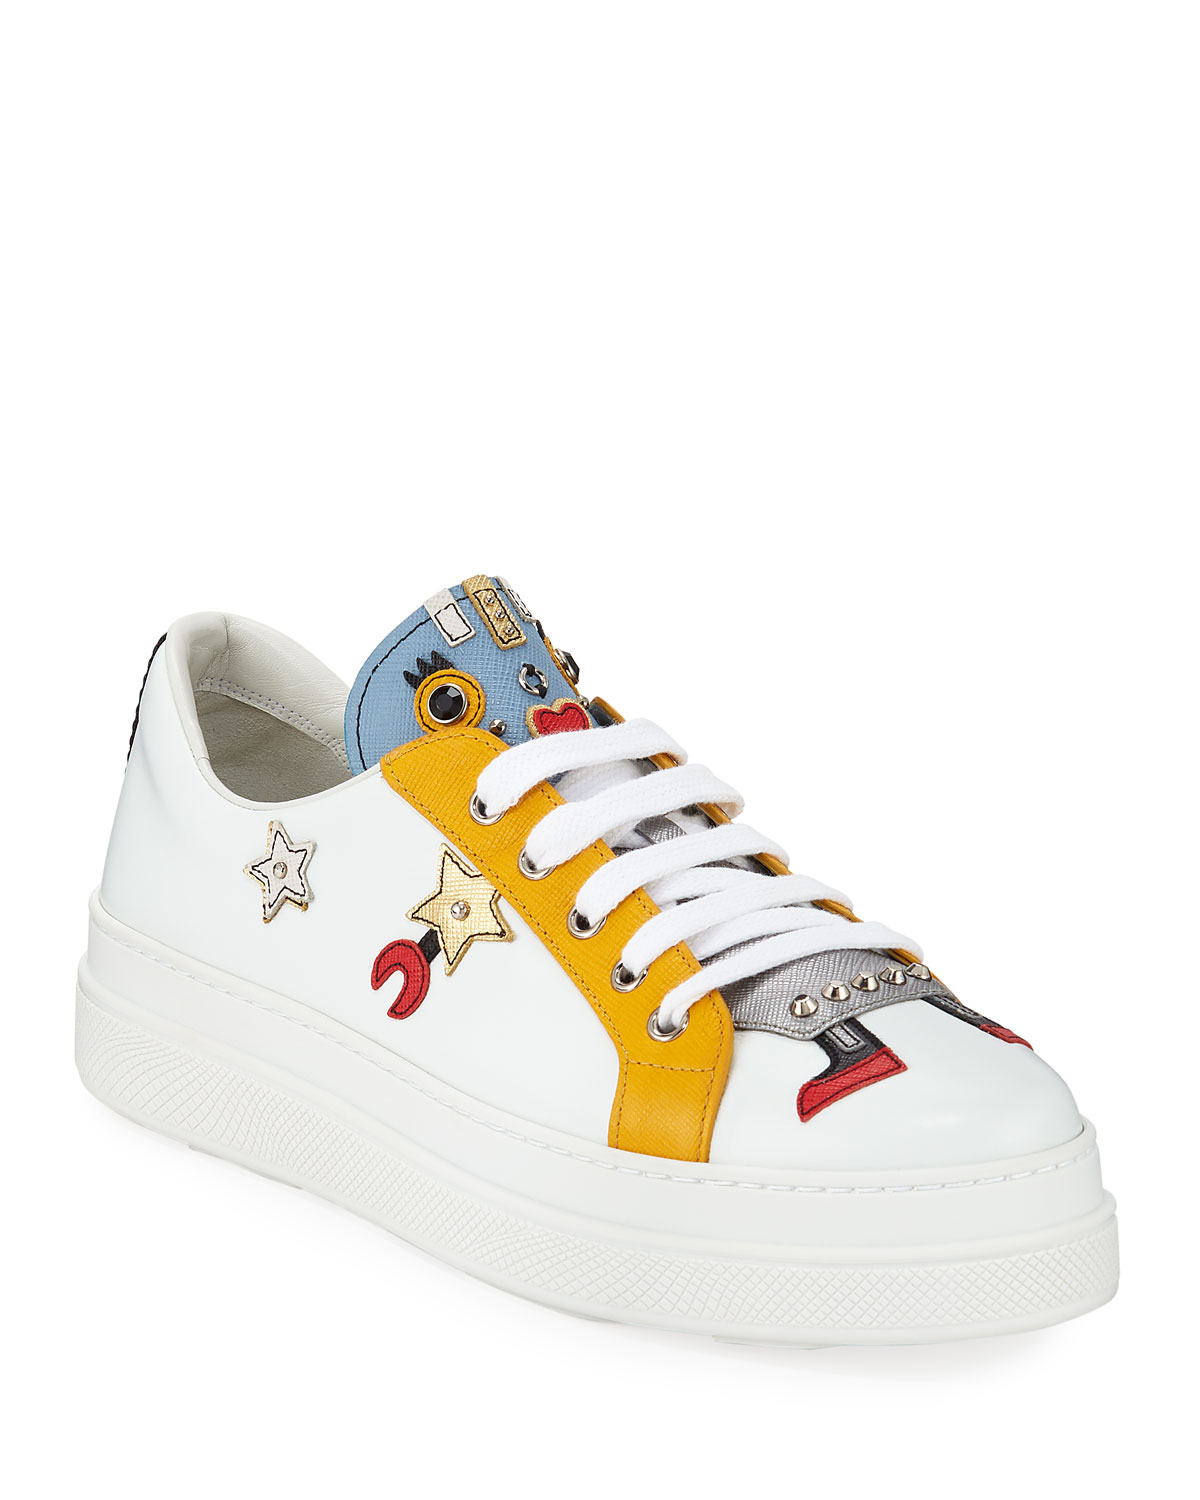 new arrival 2d2c5 e6ae2 Robot Double-Sole Leather Low-Top Sneakers